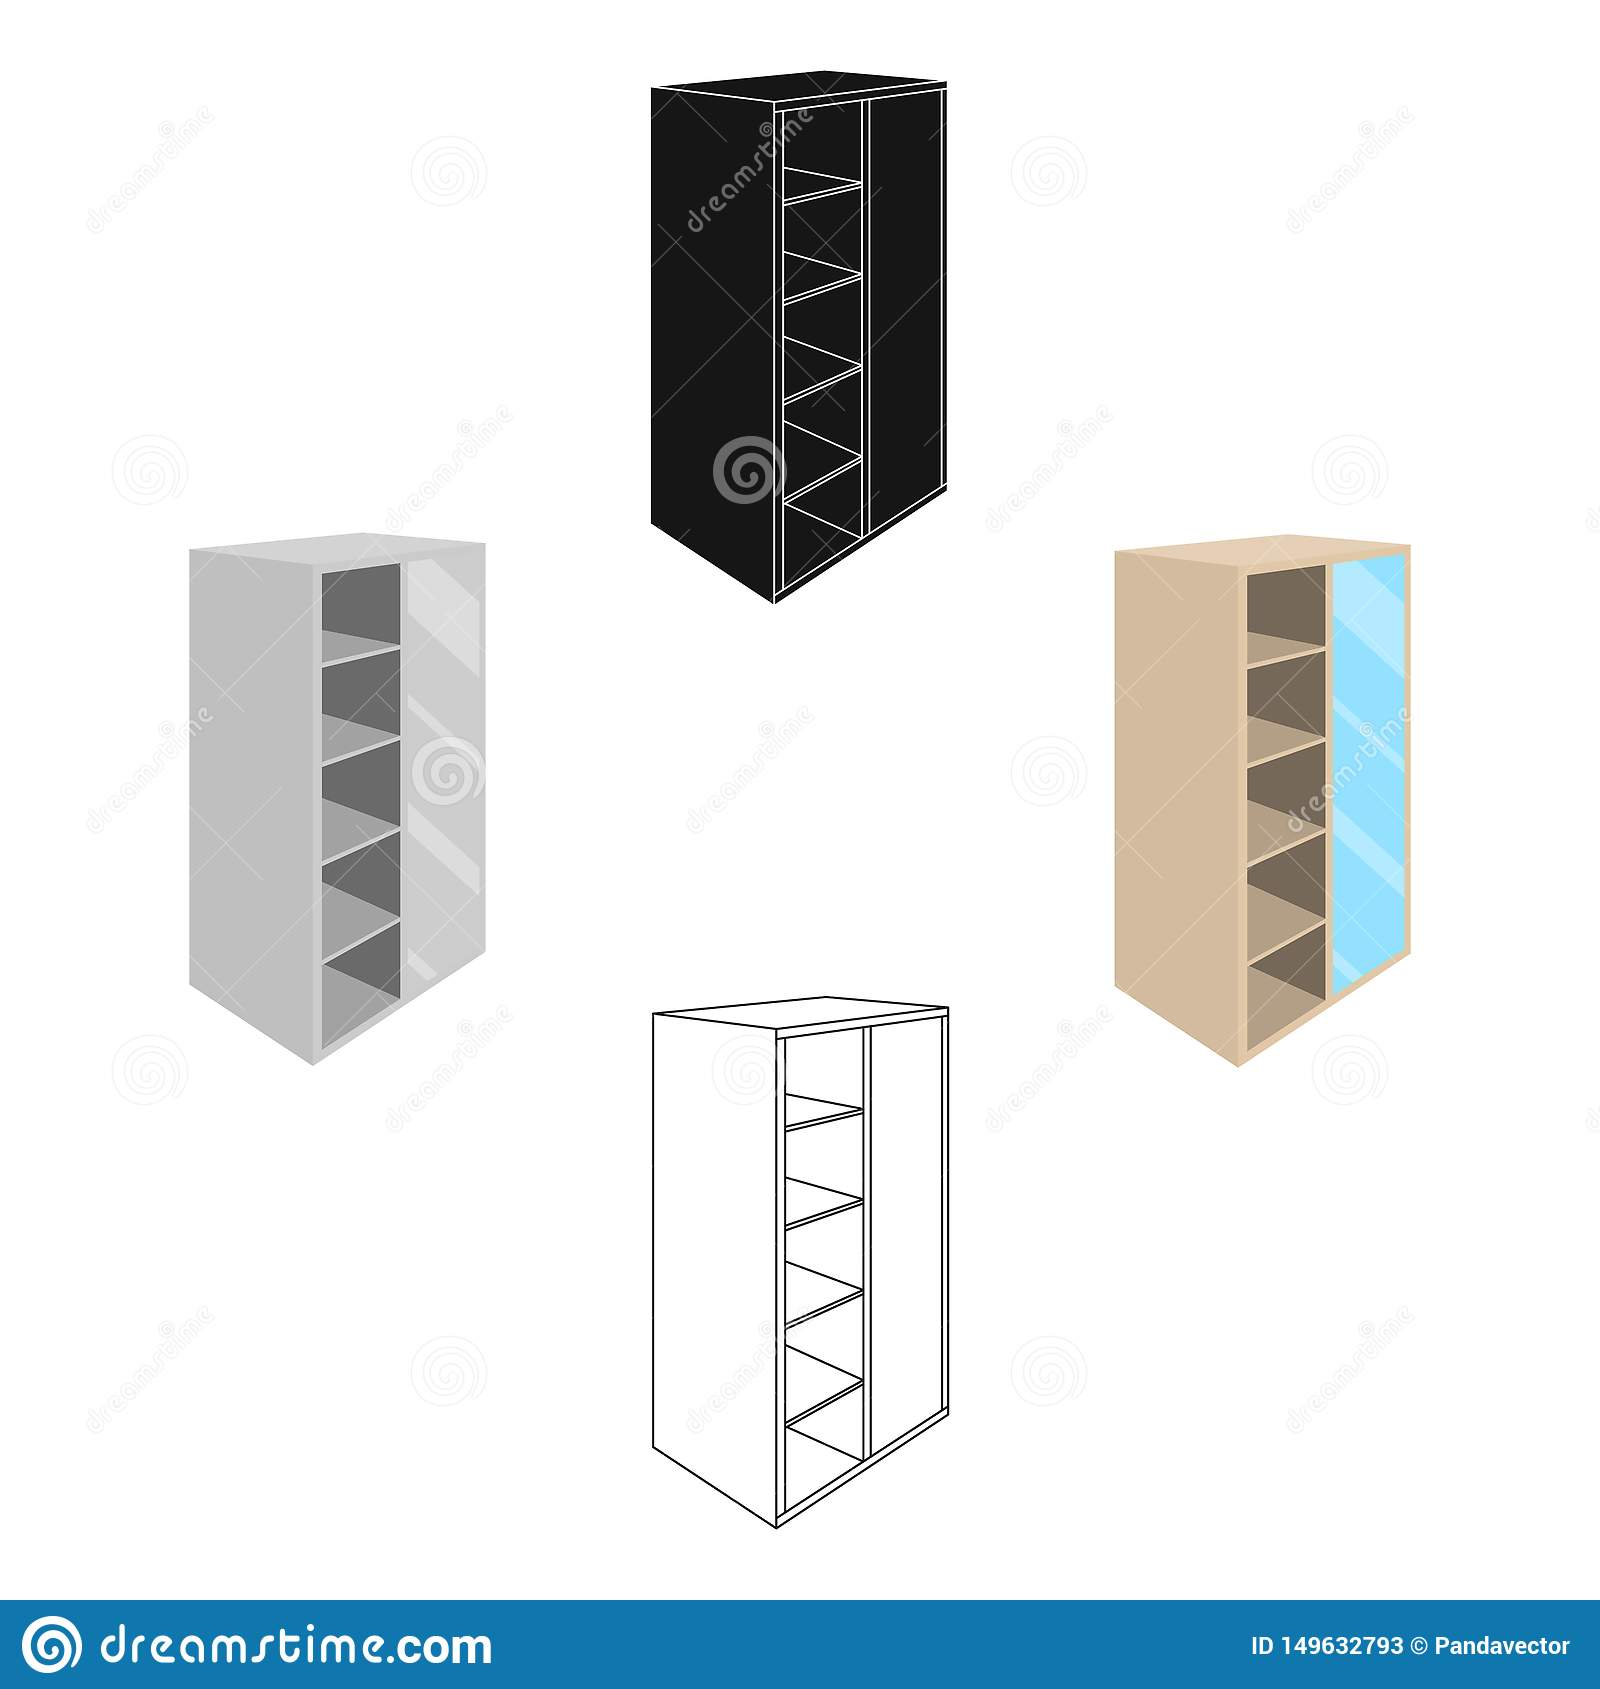 Light Cabinet With Bins And Mirror Wardrobe For Women S Clothing Bedroom Furniture Single Icon In Cartoon Black Style Stock Vector Illustration Of Shelf Interior 149632793